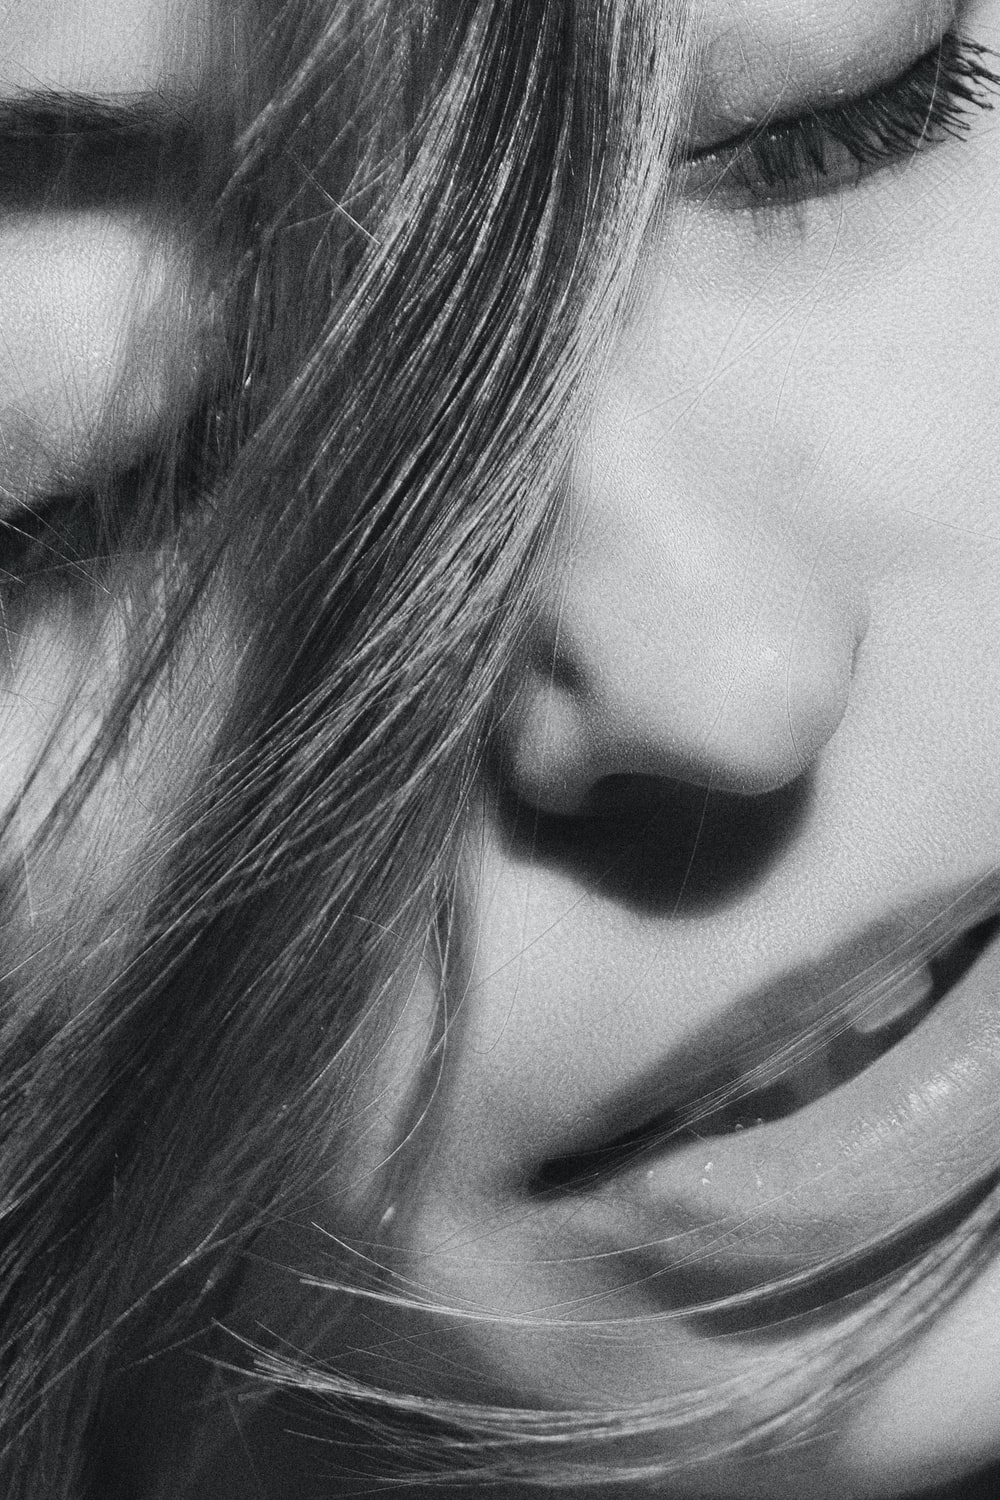 grayscale photo off woman's face